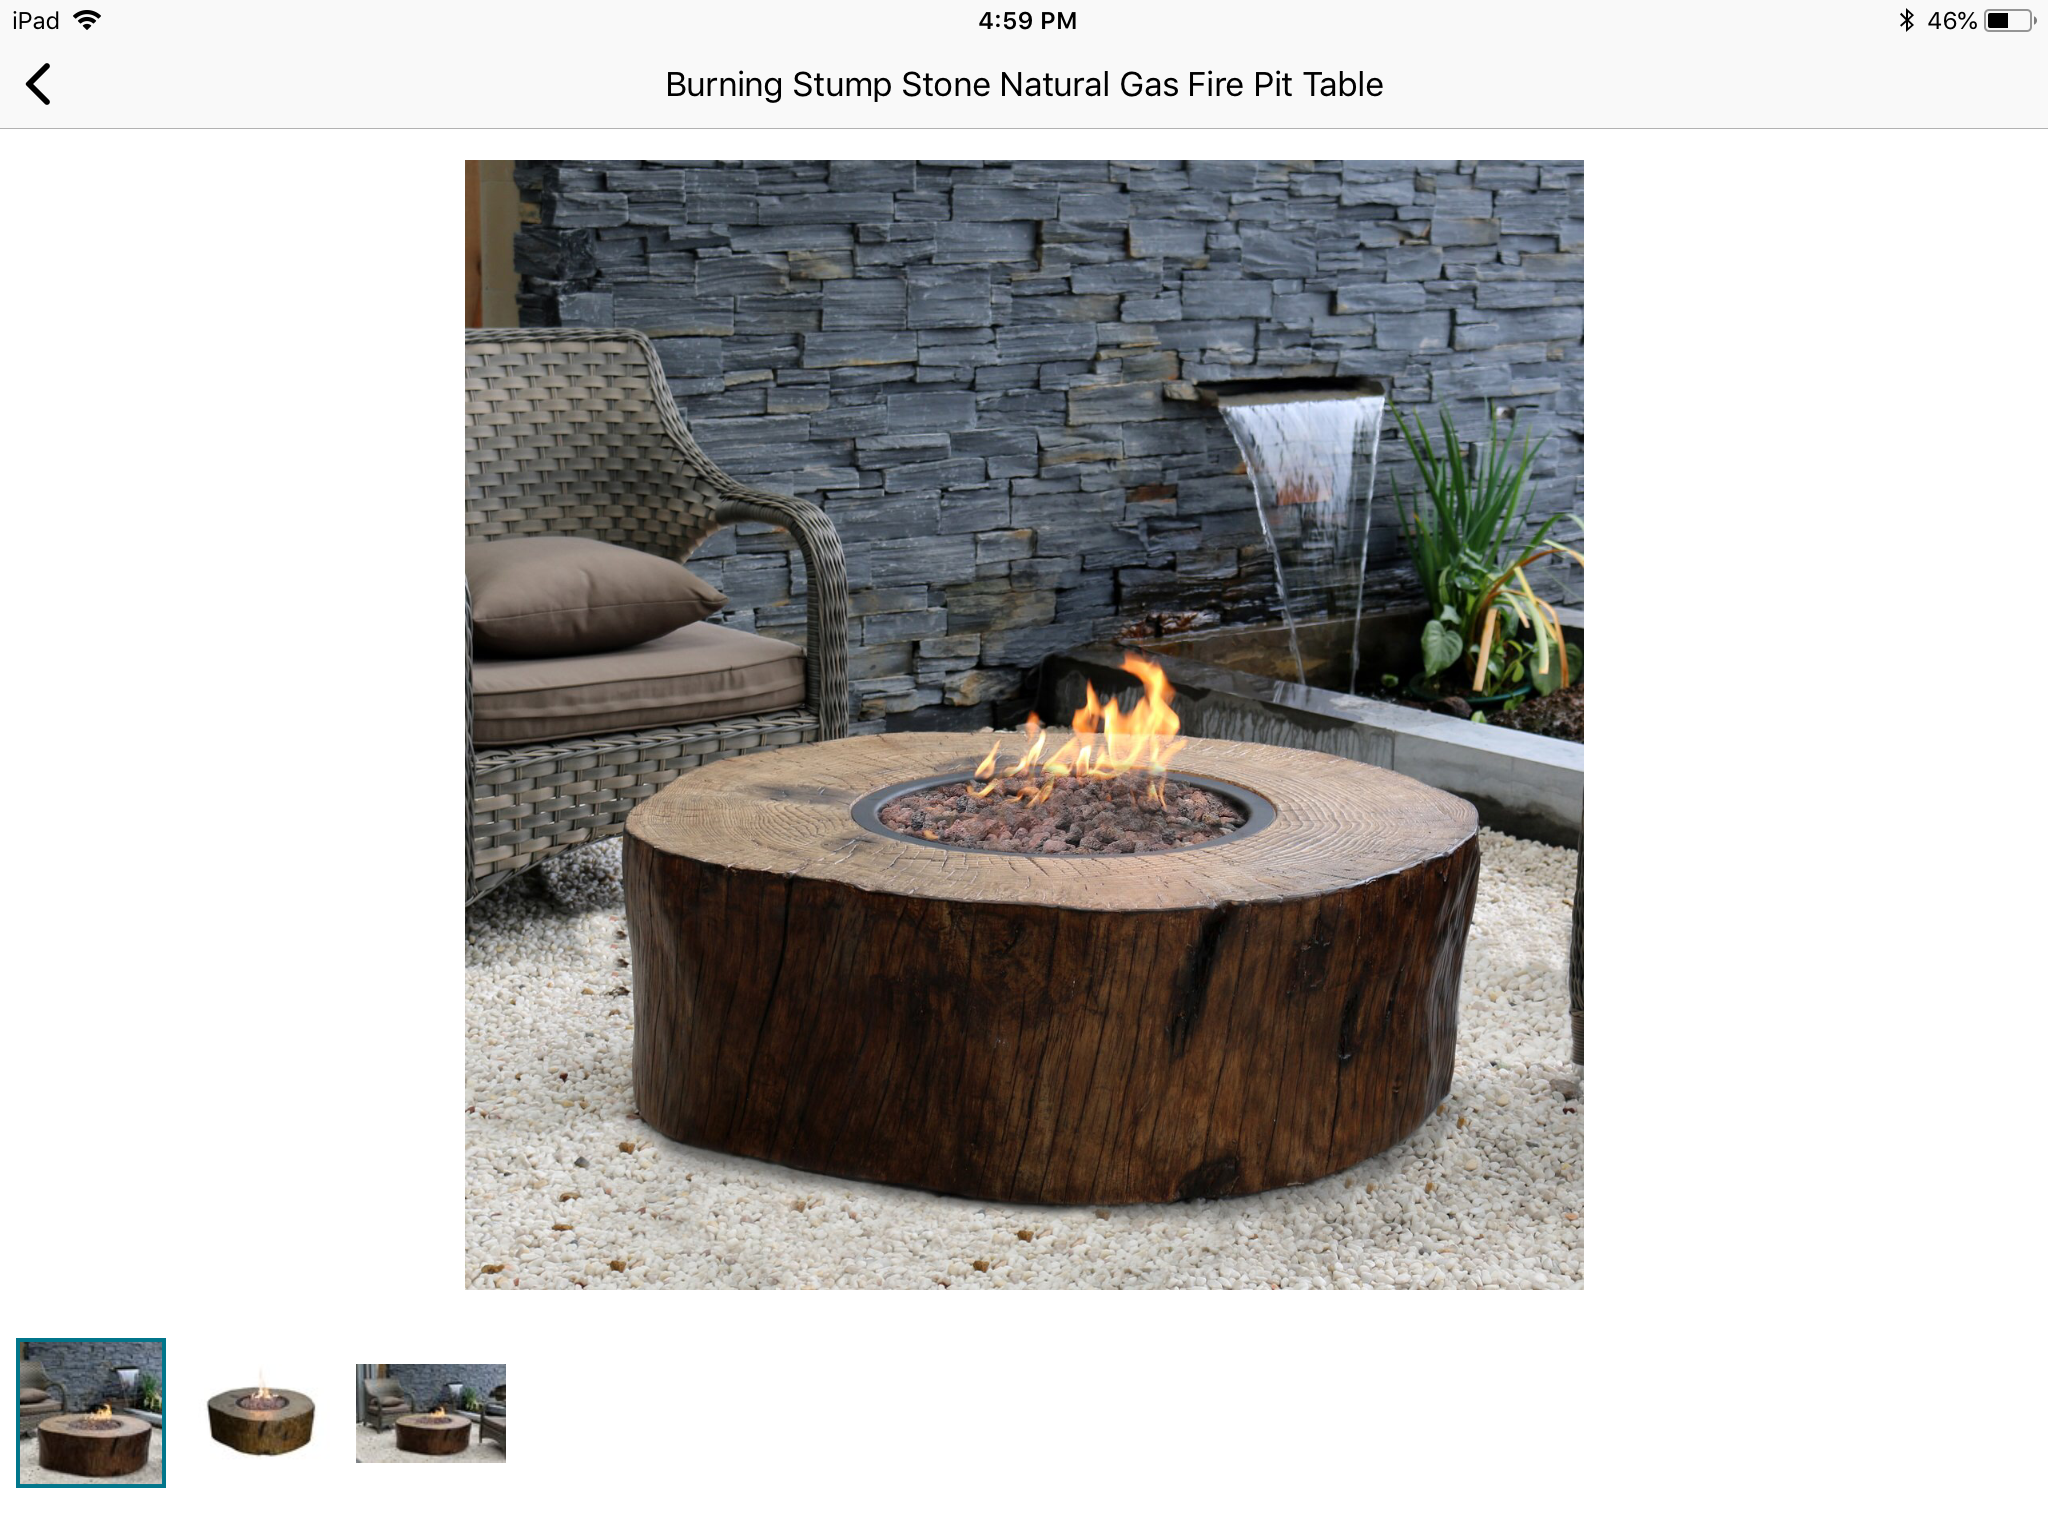 Sweet Fire Pit Propane Fire Pit Table Fire Pit Table Stump Fire Pit